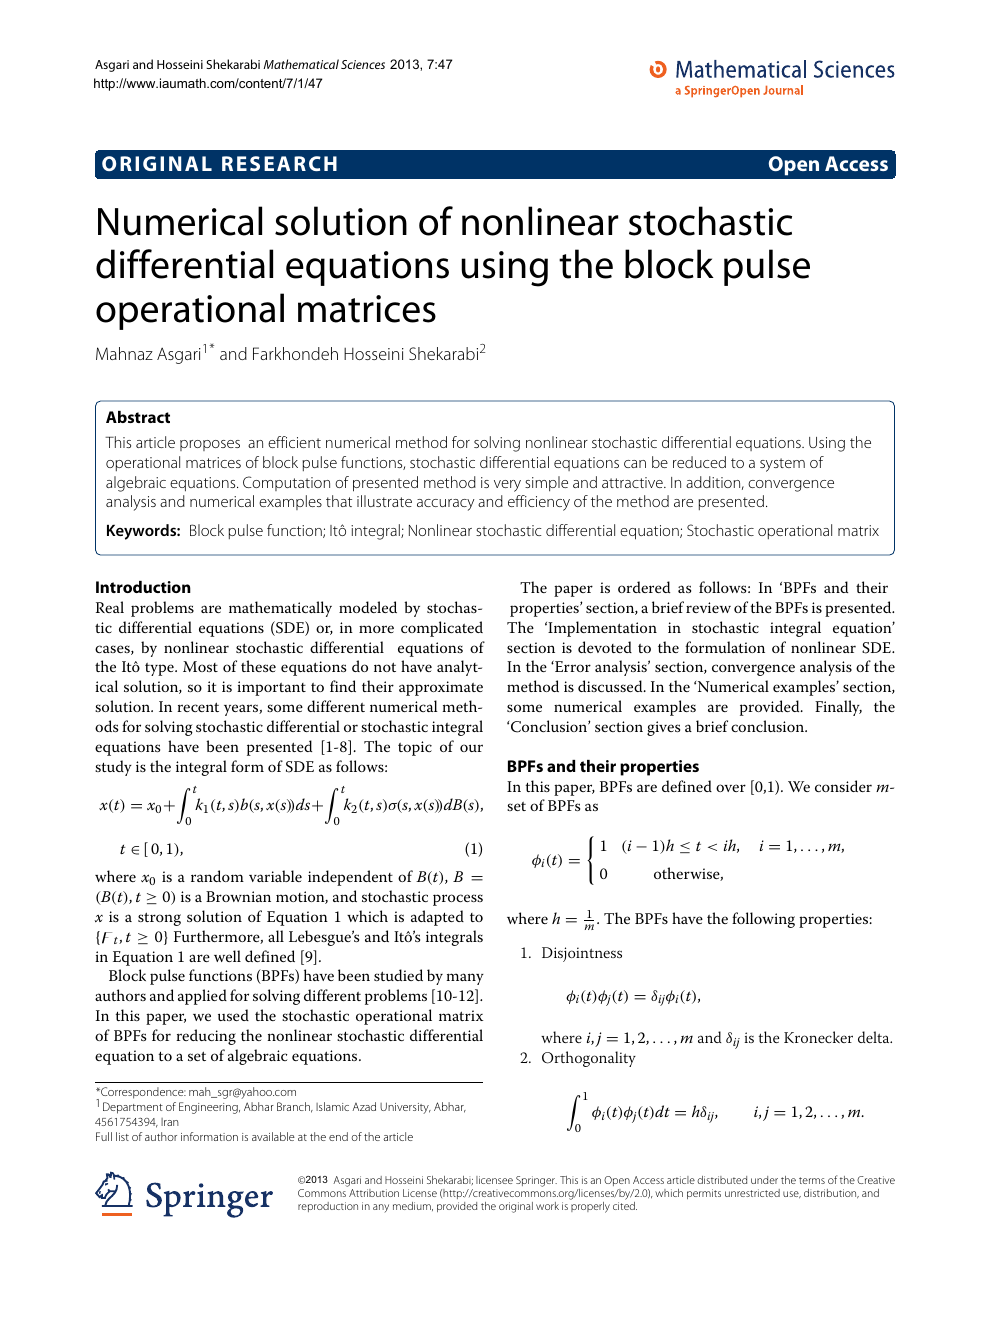 Numerical solution of nonlinear stochastic differential